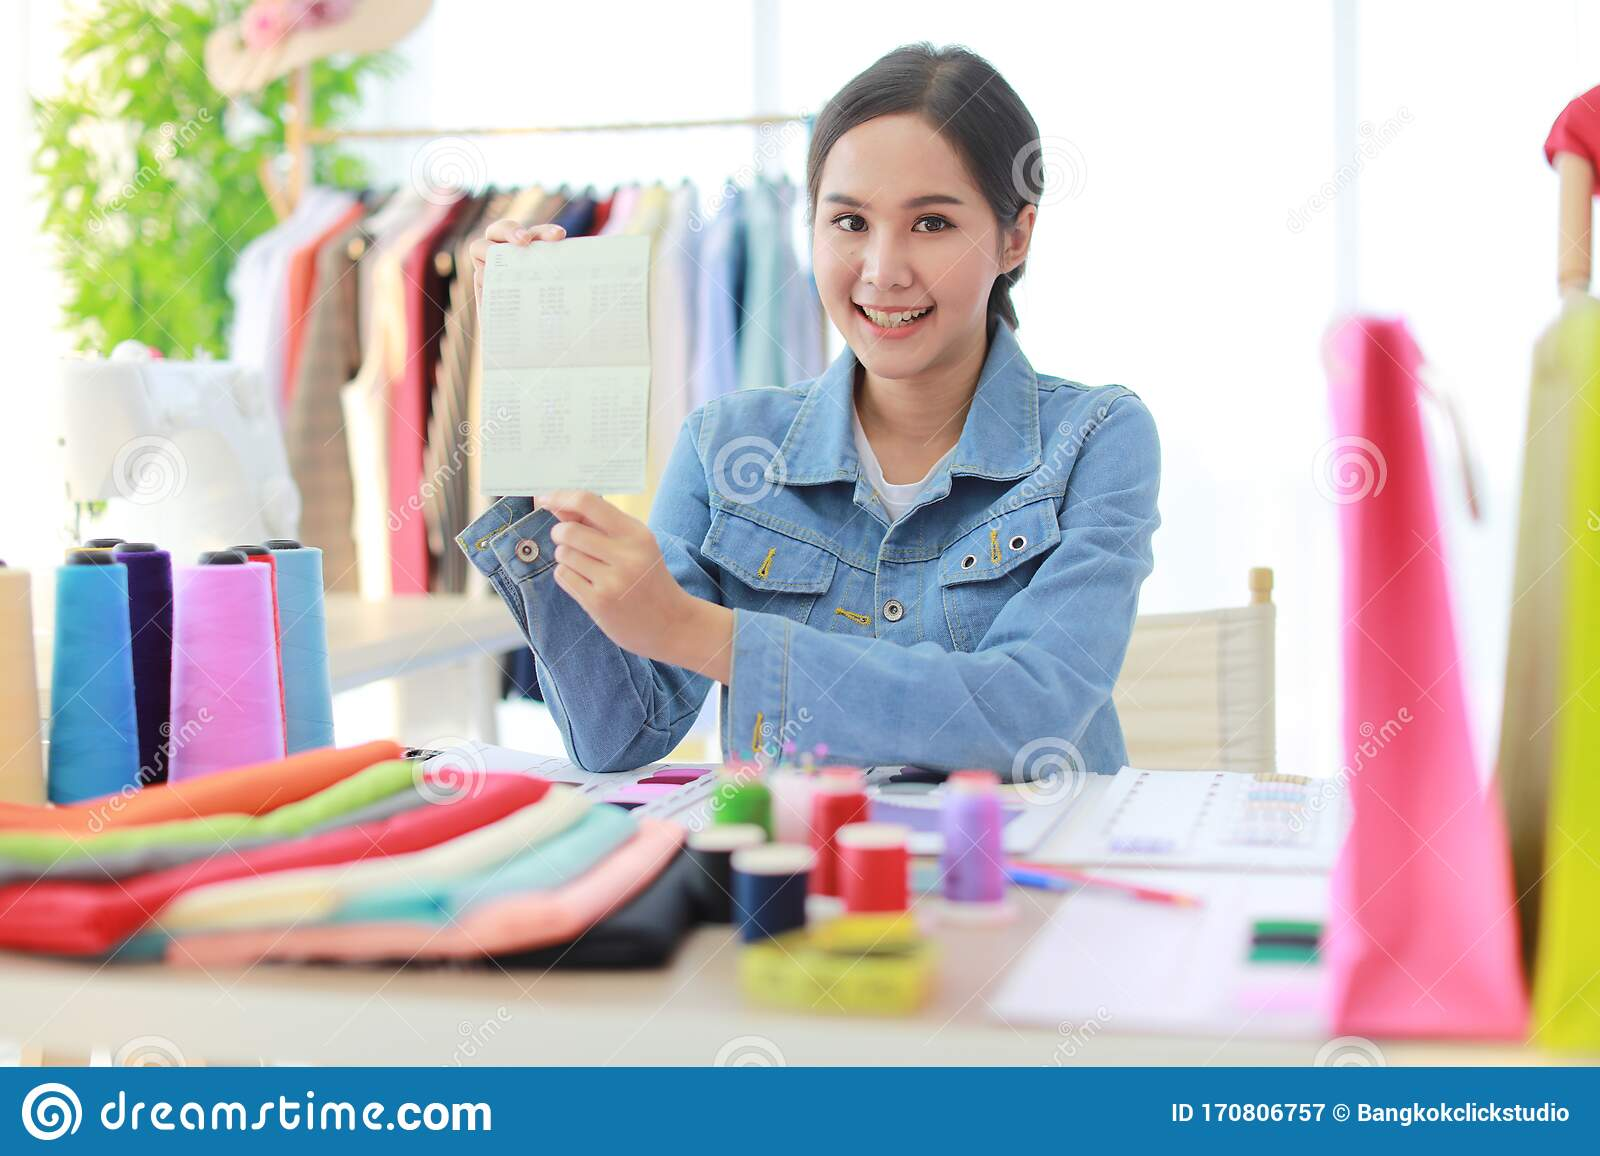 Designer Hold Bank Account With A Lot Of Money Stock Image Image Of Consumer Asian 170806757